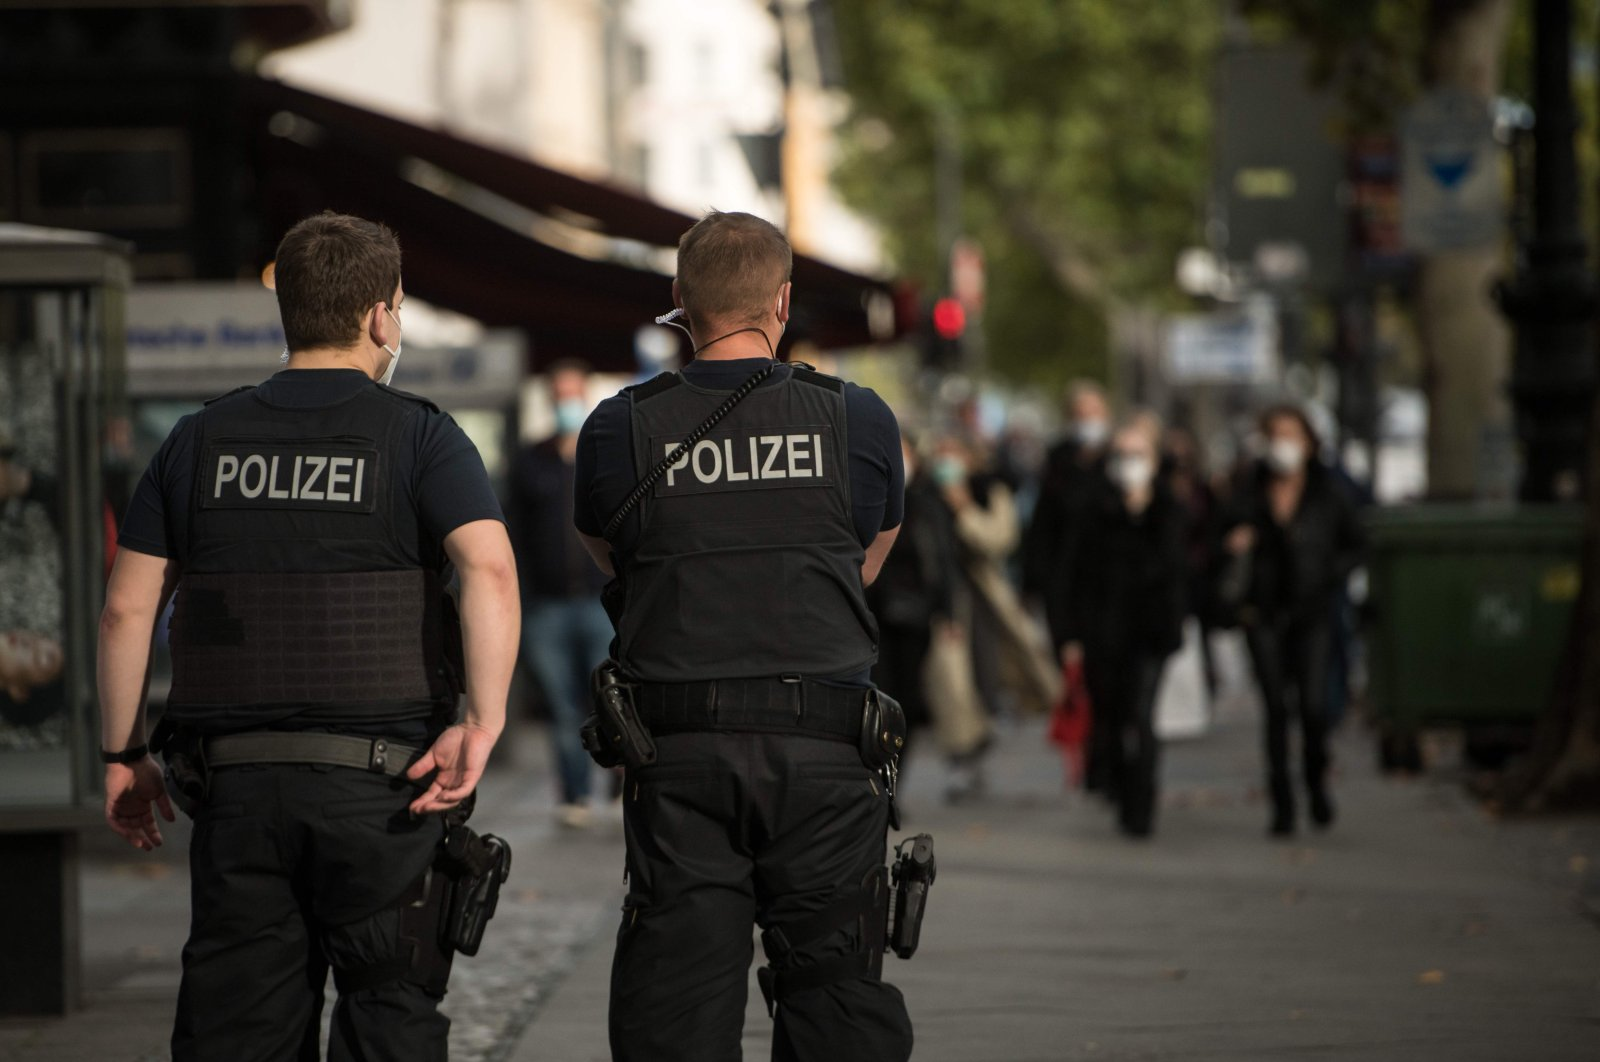 Police officers of the Federal Police patrol at Kurfuerstendamm, a popular shopping street in Berlin, Germany on Oct. 24, 2020. (AFP Photo)